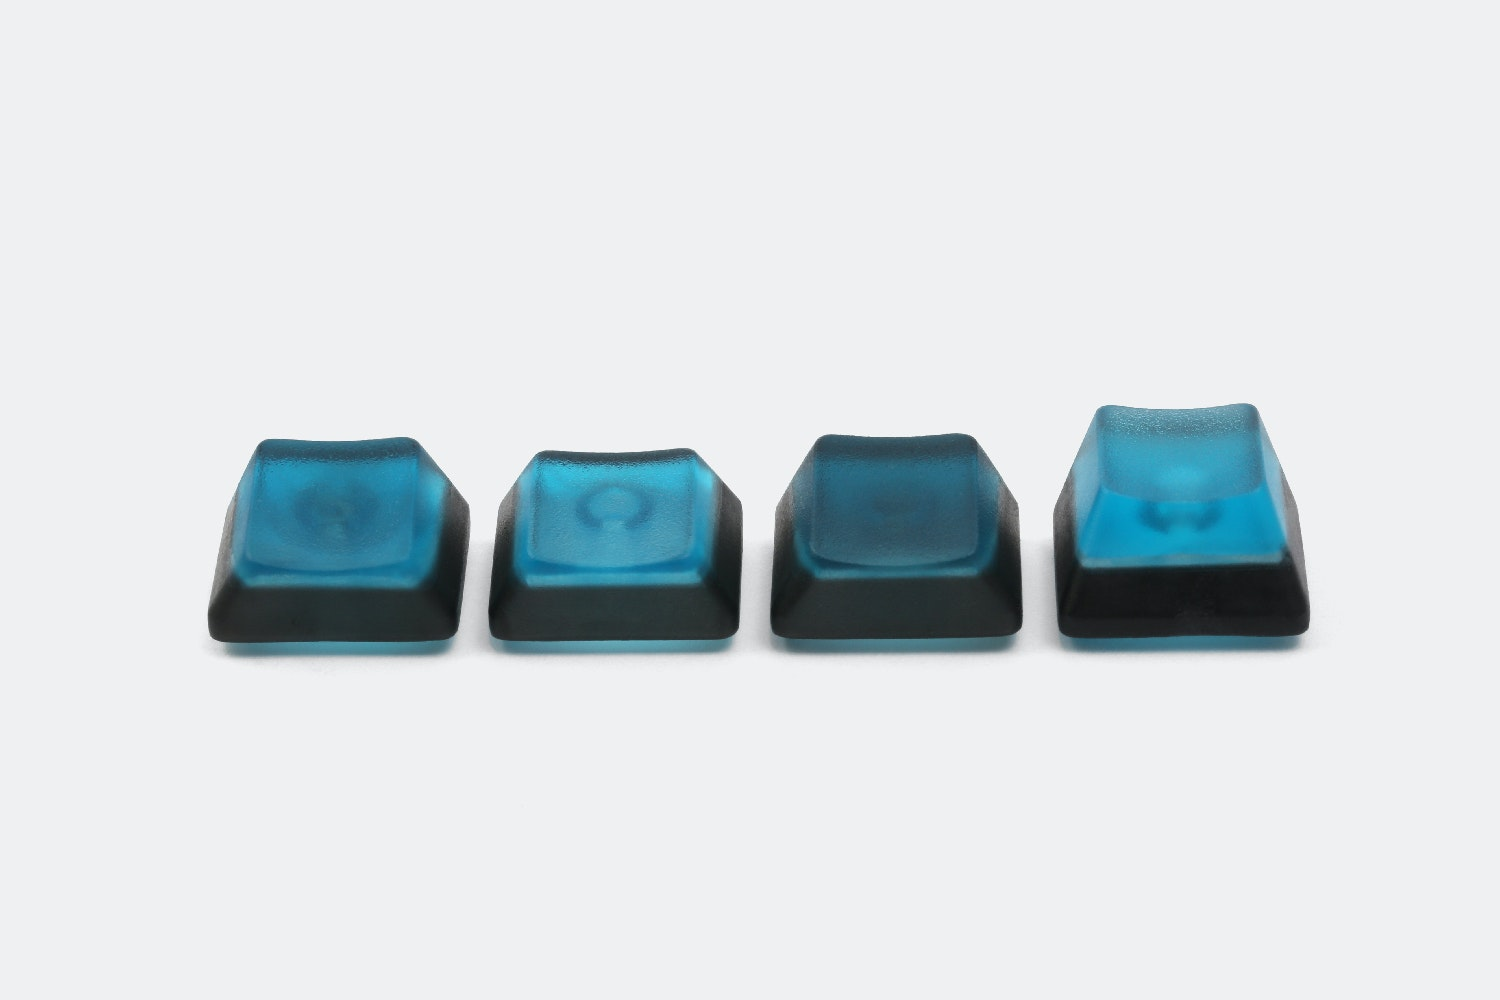 Hidden Lab Two-Tone MX / HHKB Resin Keycaps